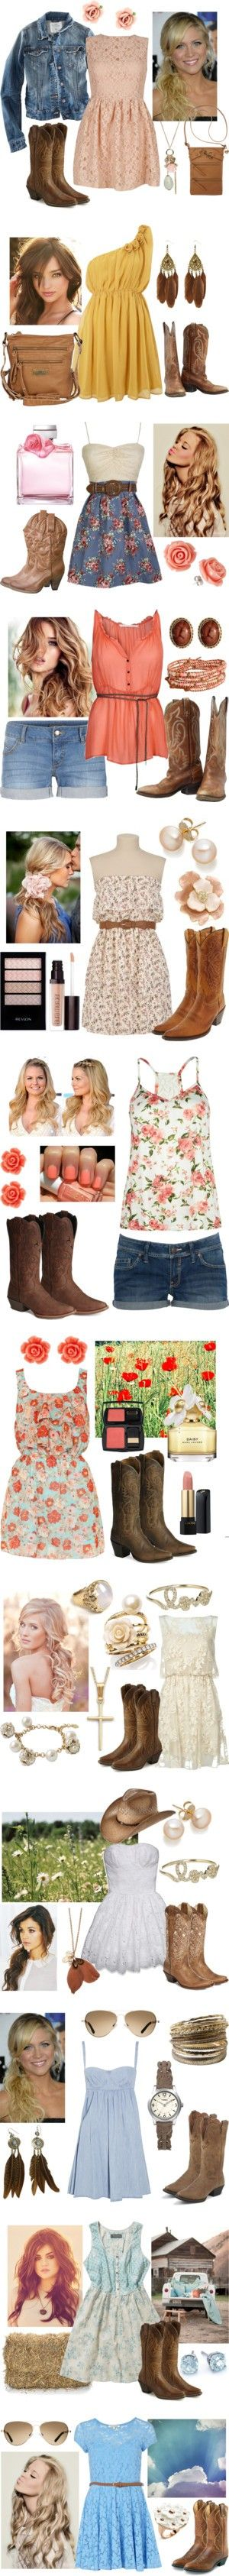 cute outfit and hairstyle combinations